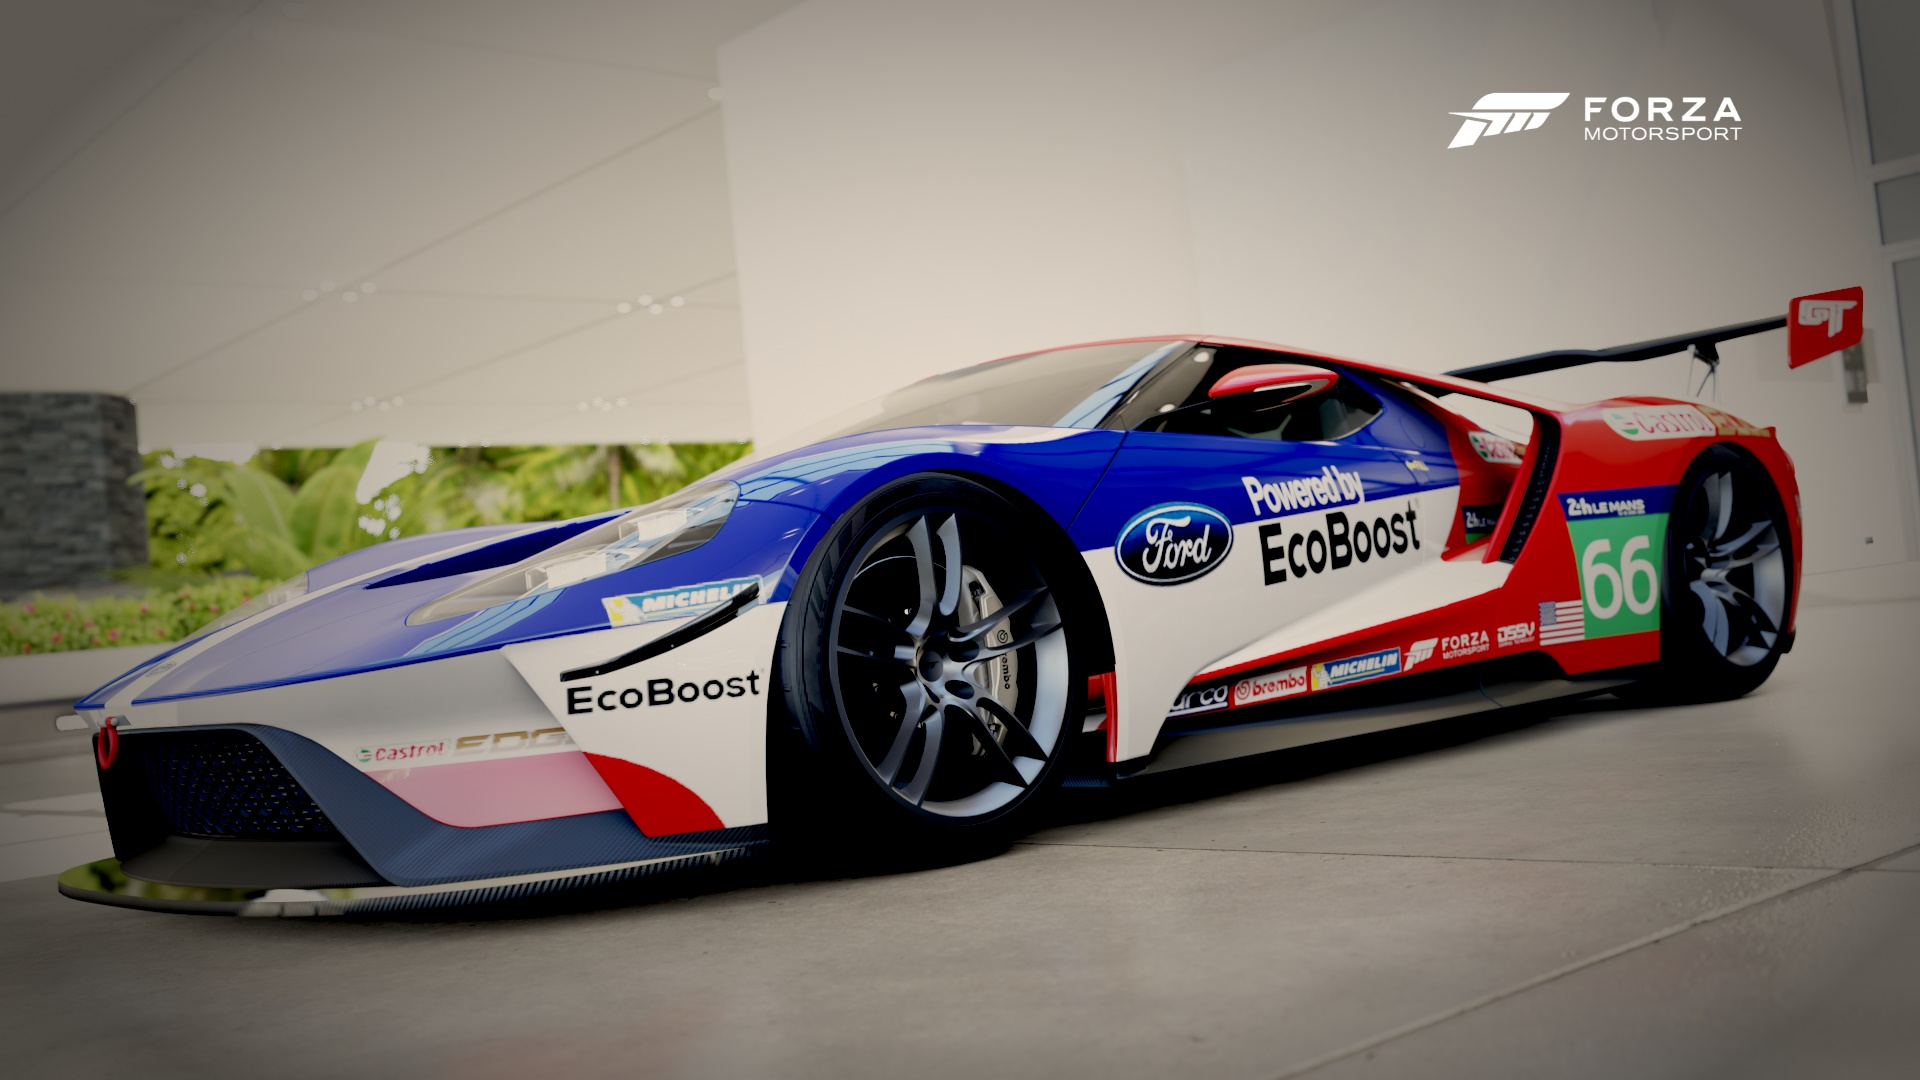 Video Game Forza Motorsport  Ford Gt Ford Wallpaper